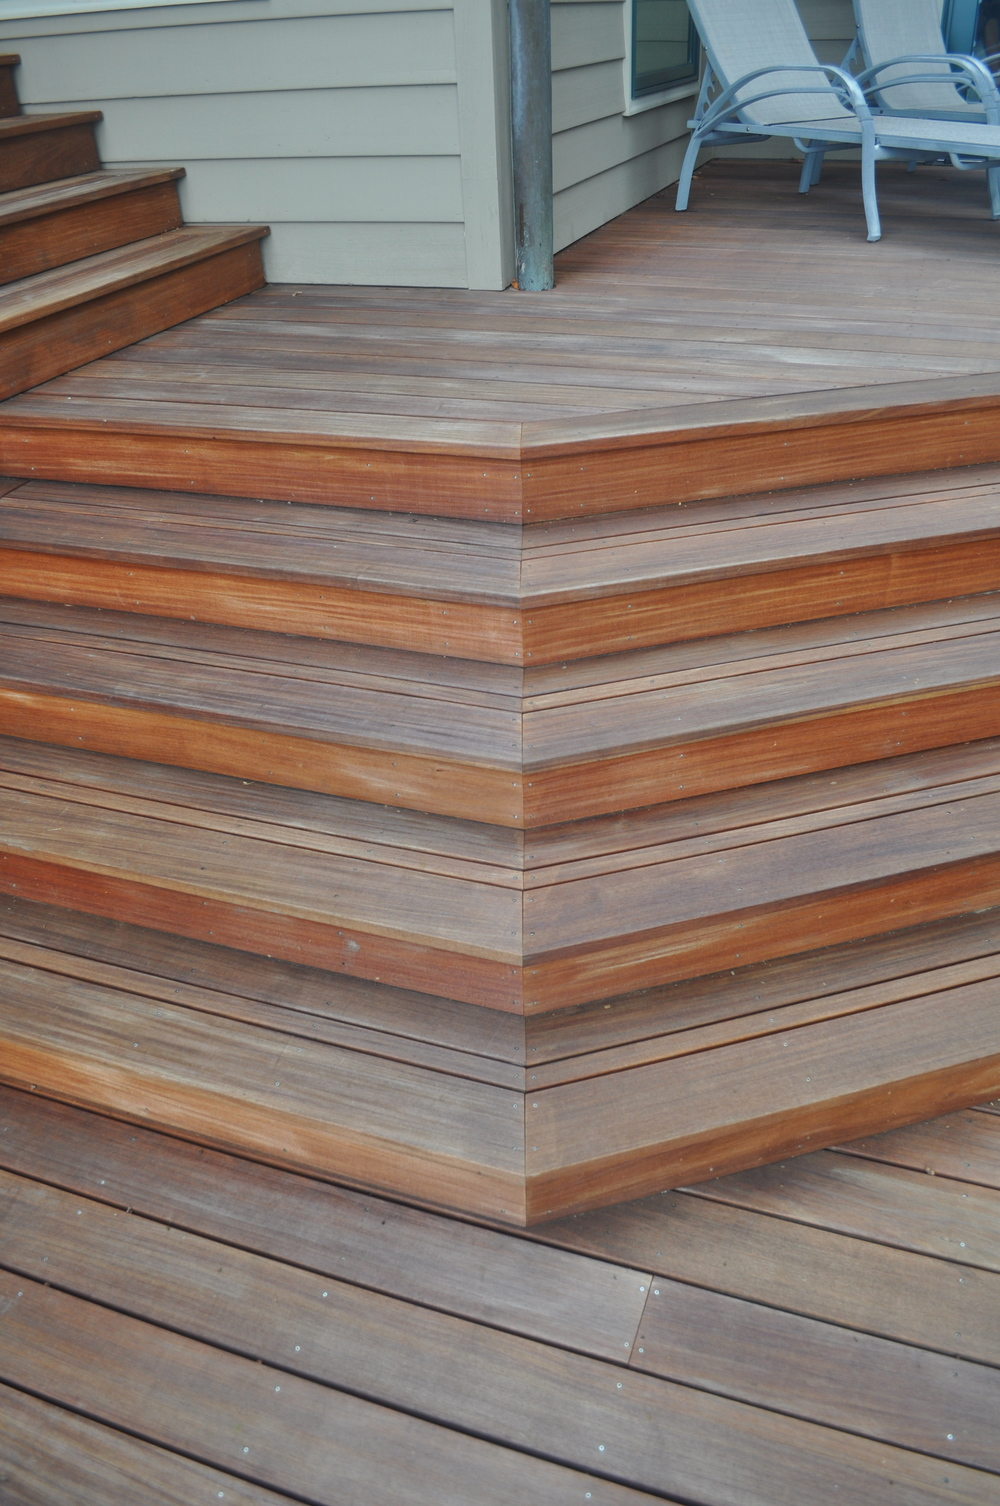 Boone/Jamison Residence, Detail of steps on rear Ipe deck.